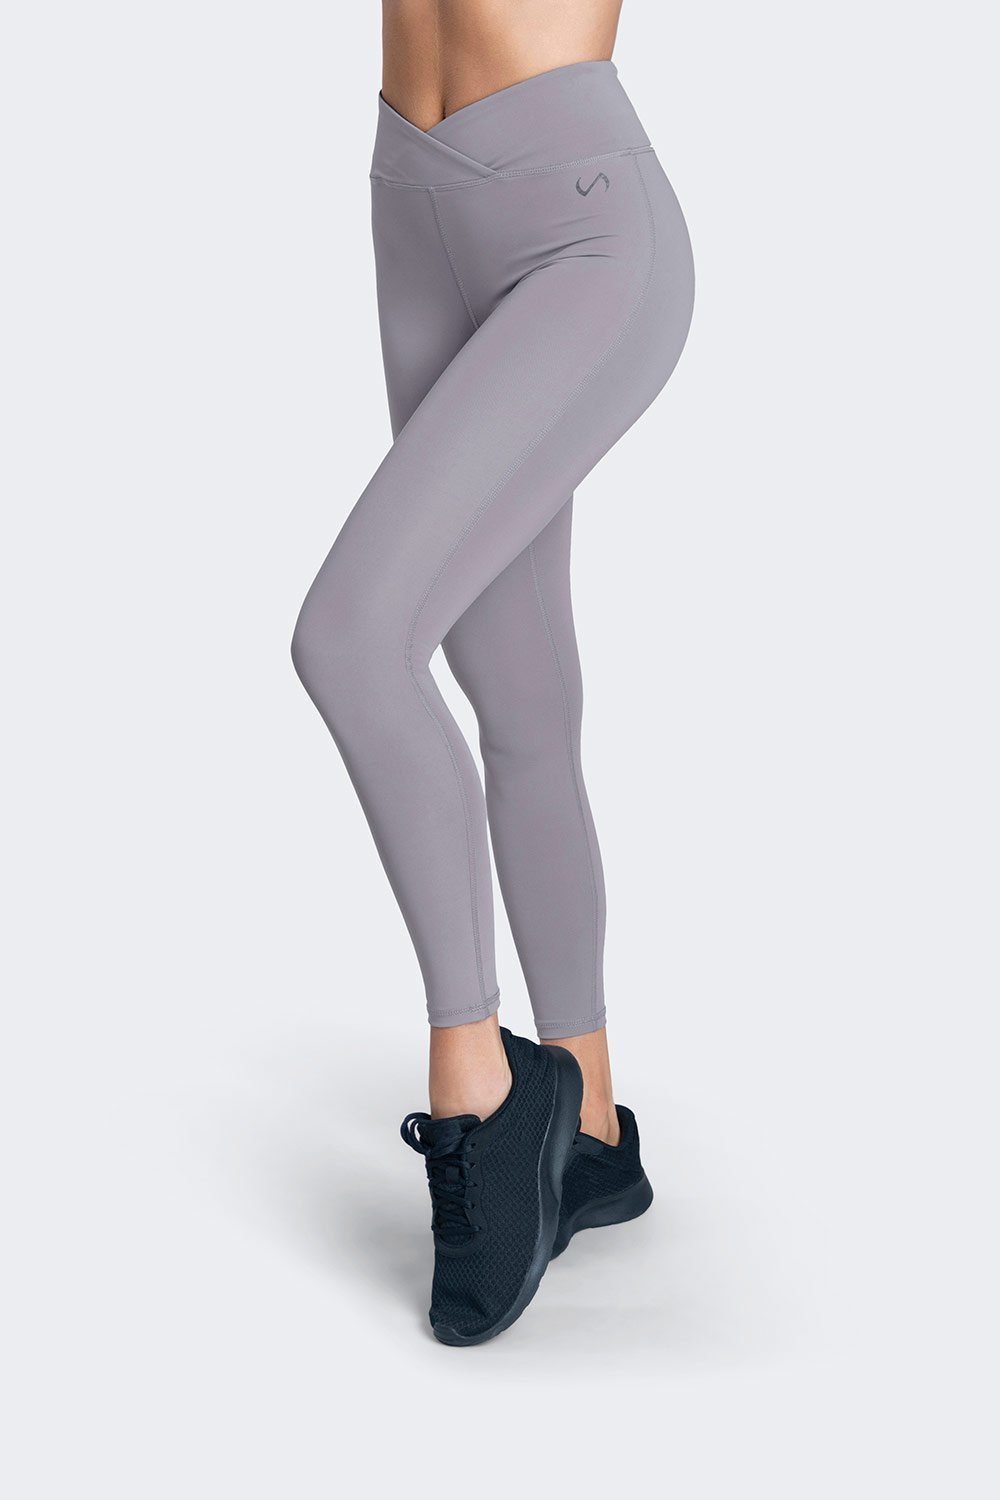 TLF Electra 7/8 Legging - Leggings - TLF Apparel | Take Life Further